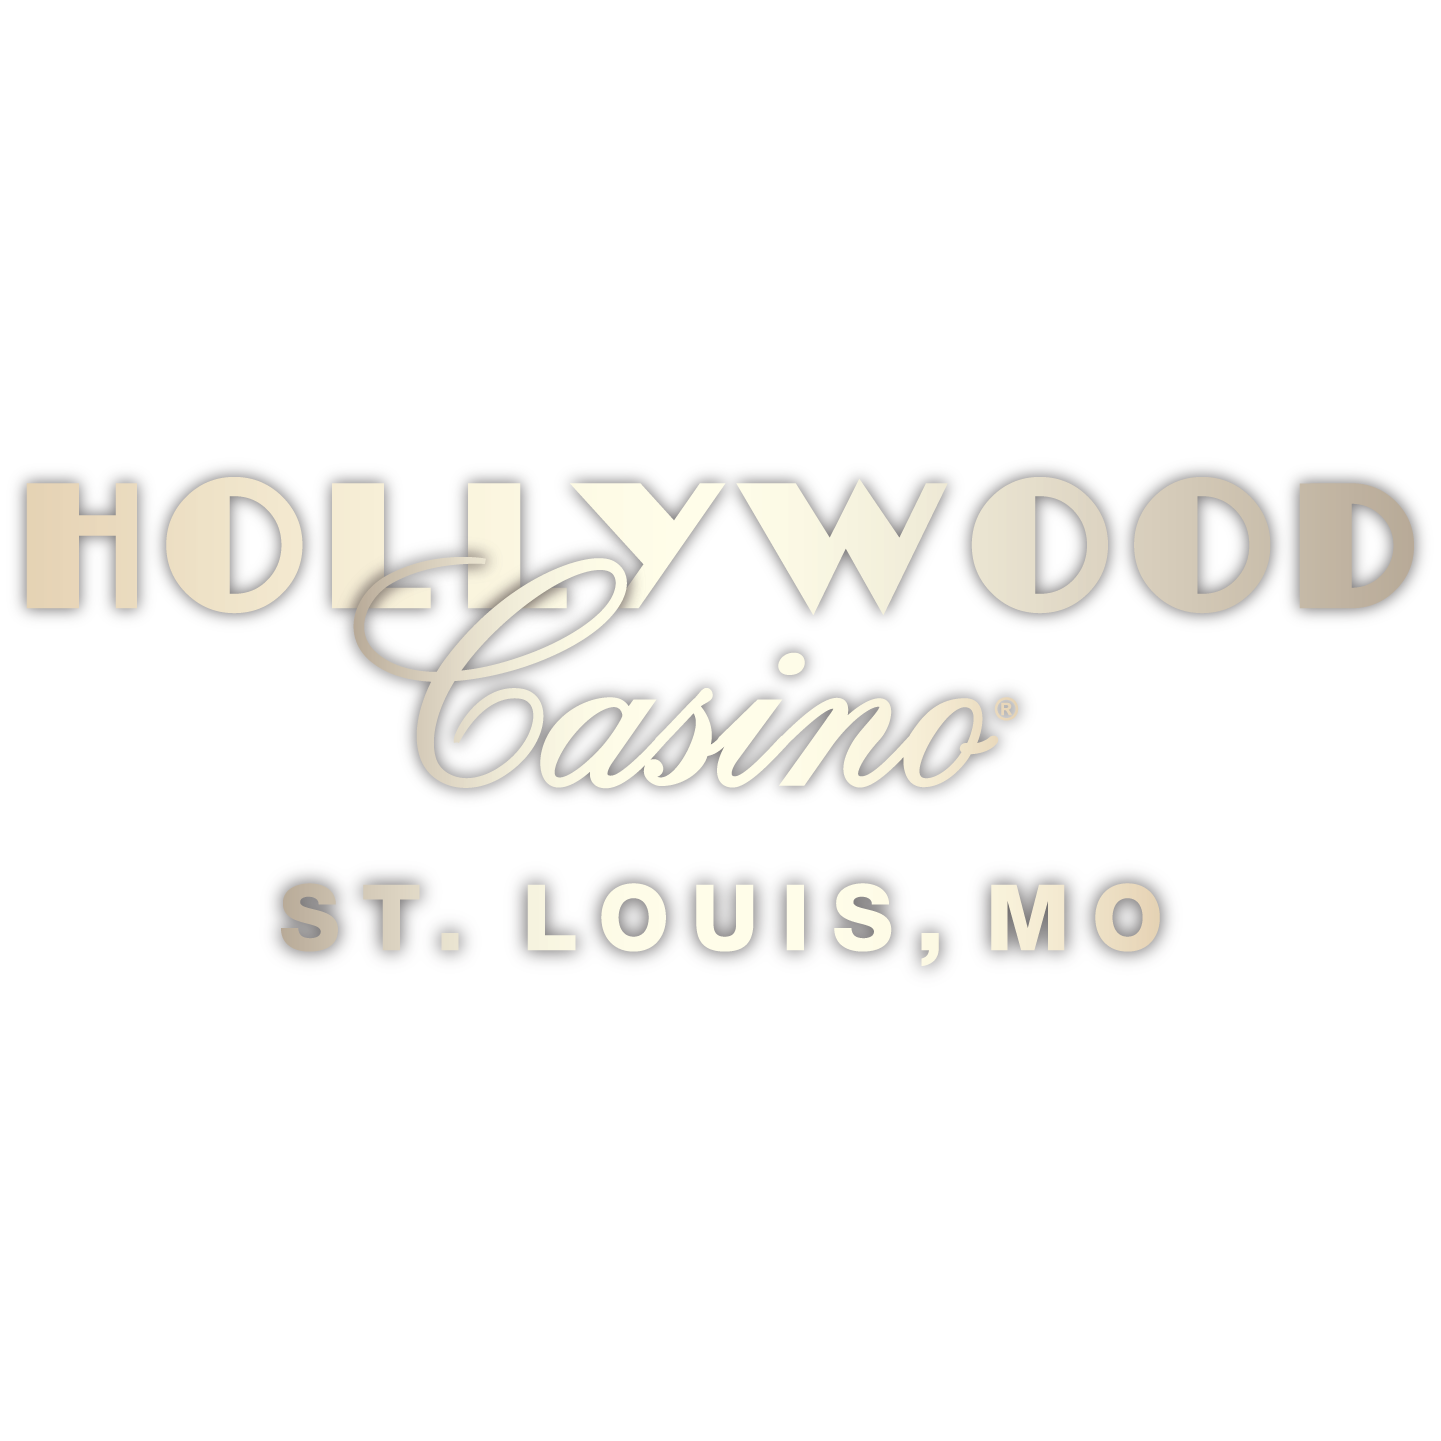 Gambling st louis missouri